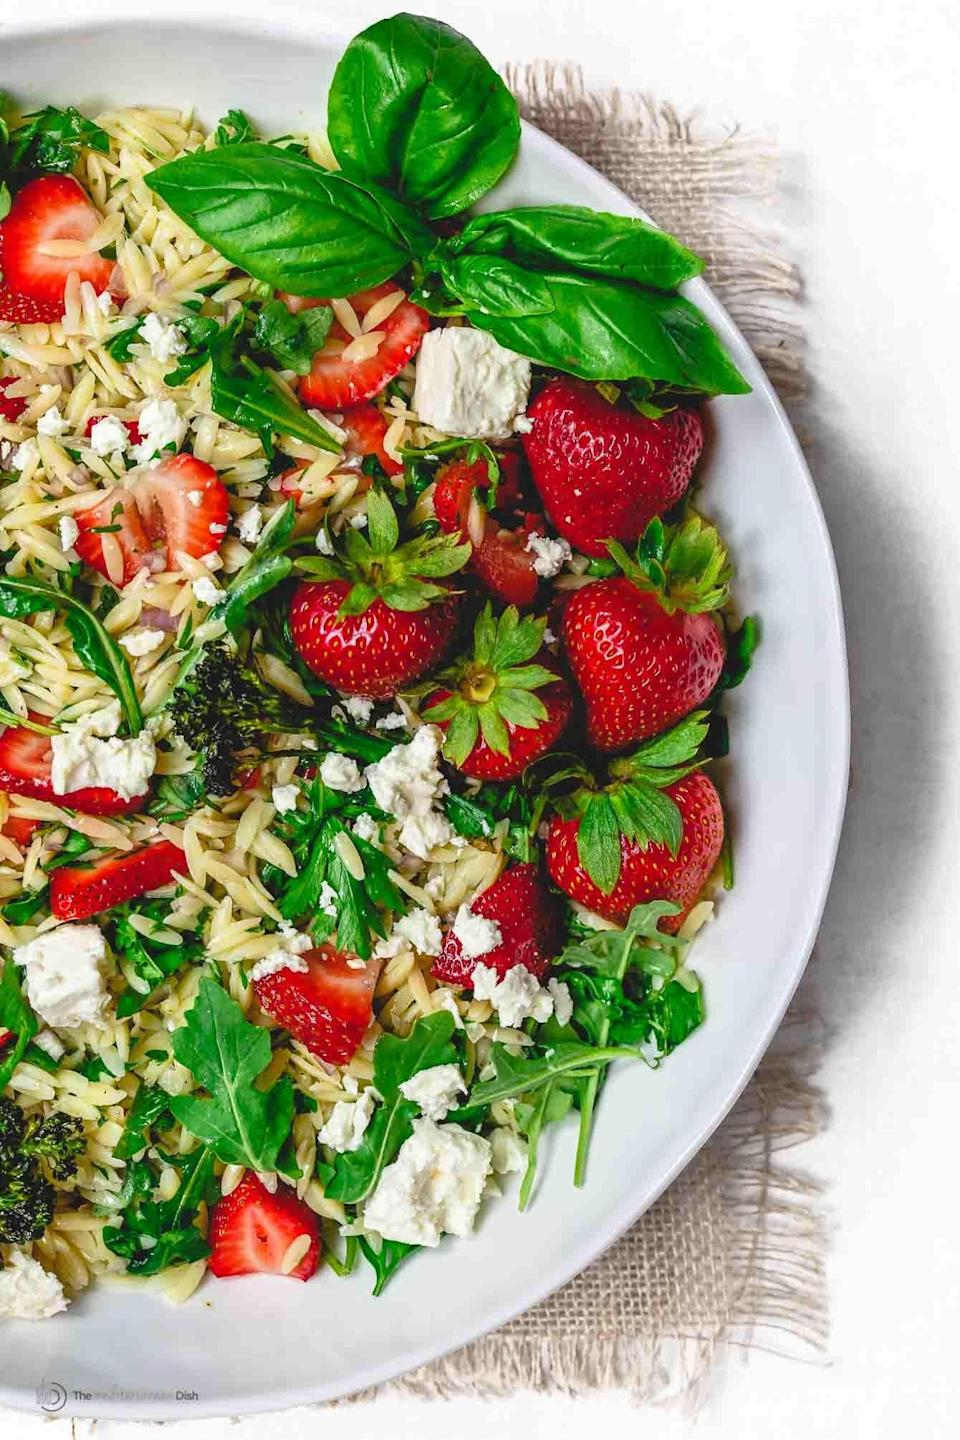 """<p>Bursting with sweet strawberry flavors, this pasta salad tastes like a sunny summer day. We suggest adding bits of mint and goat cheese if you really want to elevate this dish.</p> <p><strong>Get the recipe:</strong> <a href=""""https://www.themediterraneandish.com/mediterranean-strawberry-orzo-pasta-salad/"""" class=""""link rapid-noclick-resp"""" rel=""""nofollow noopener"""" target=""""_blank"""" data-ylk=""""slk:Mediterranean strawberry orzo pasta salad"""">Mediterranean strawberry orzo pasta salad</a></p>"""